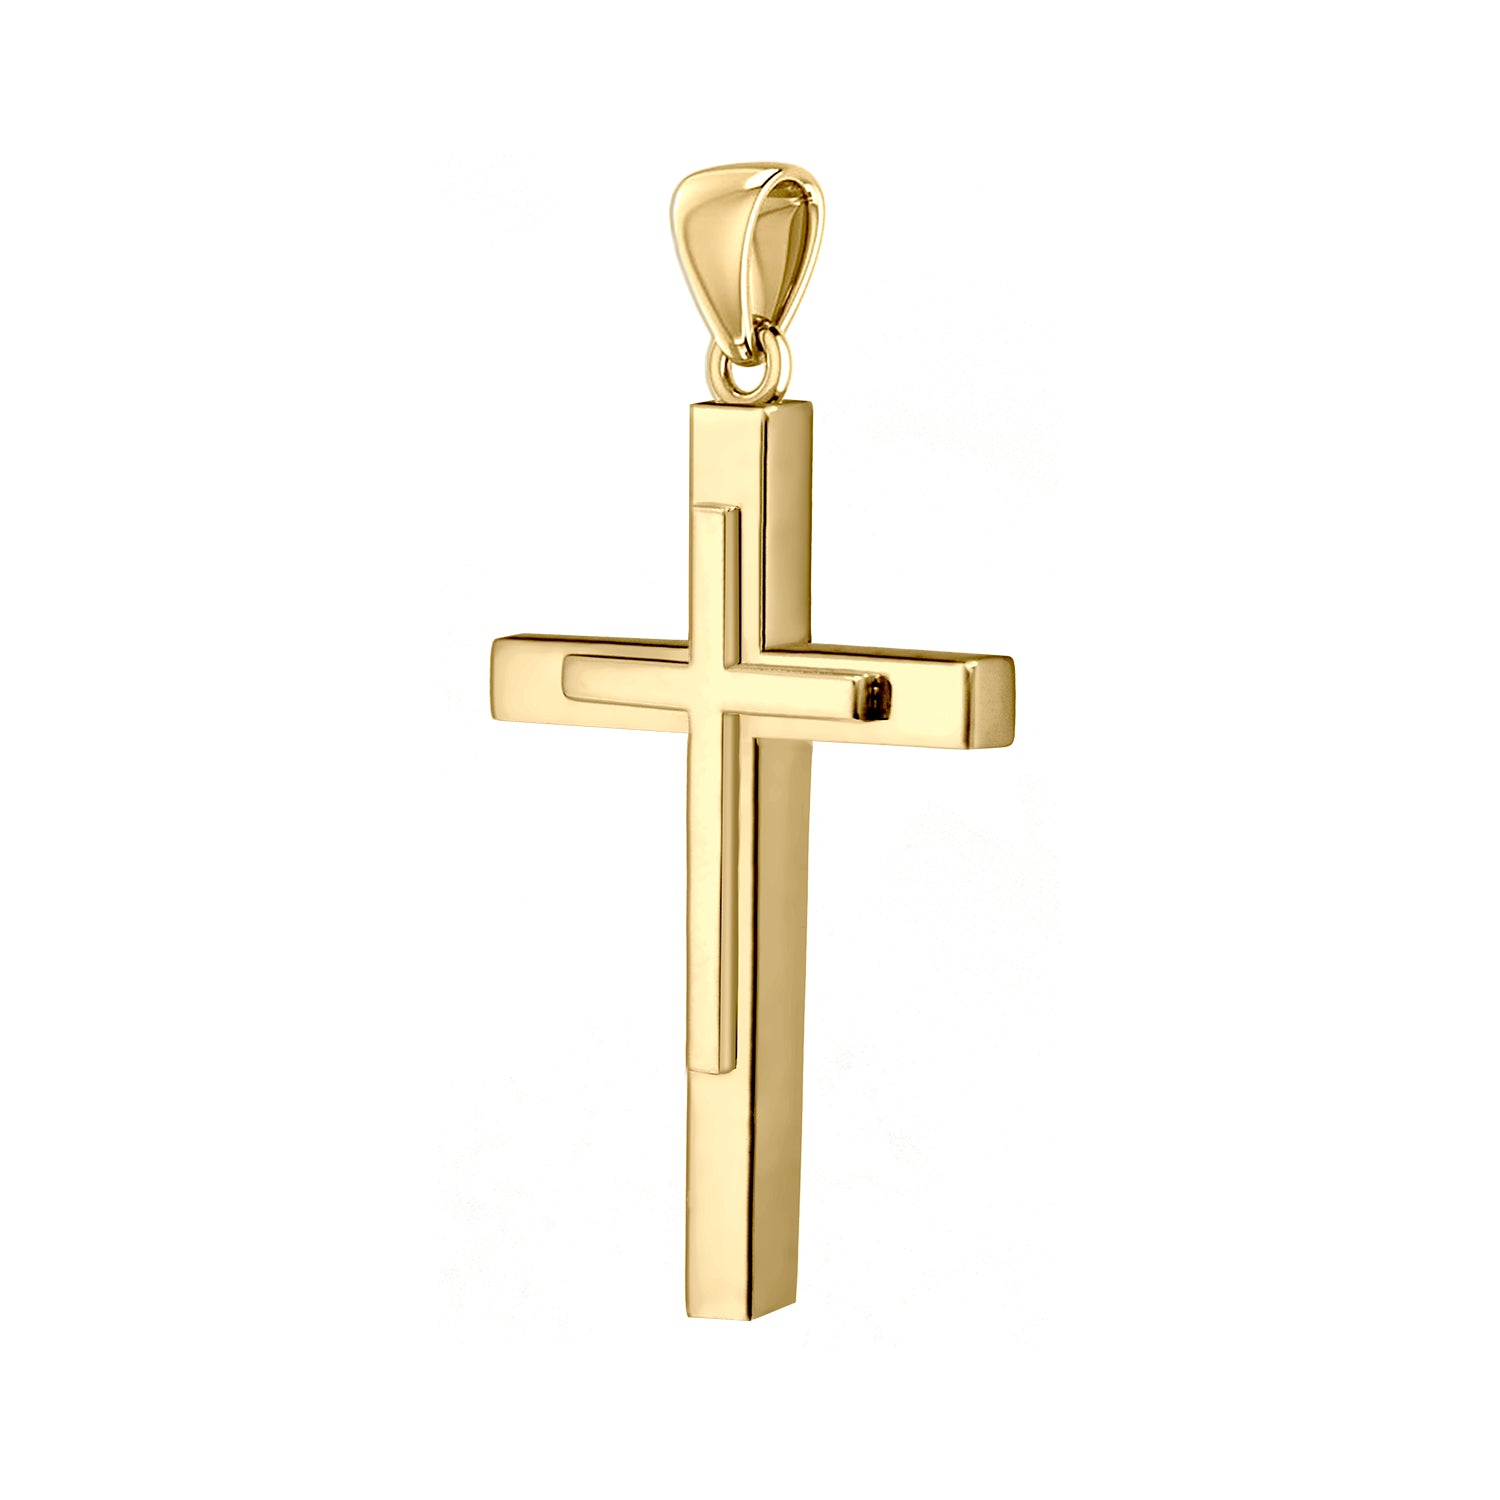 Christian Cross Necklace In Yellow Gold - Pendant Only